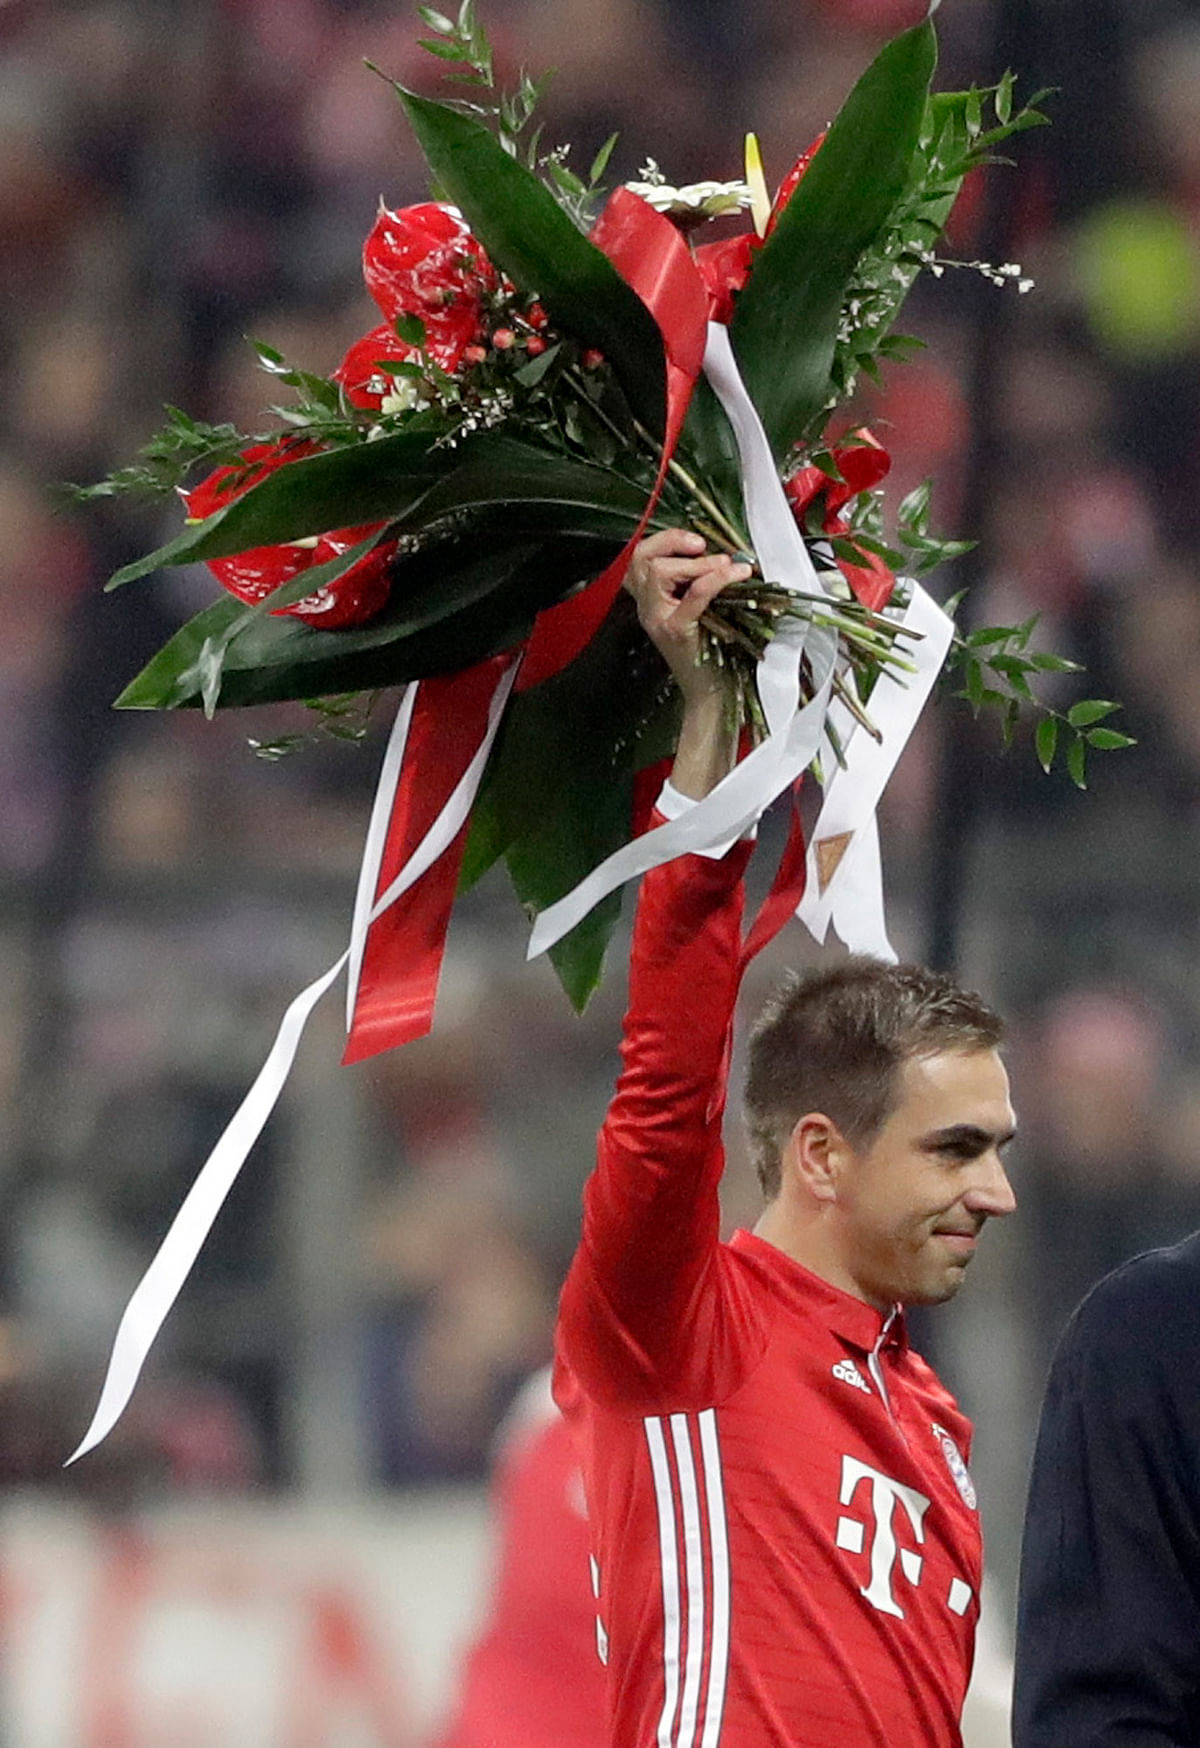 Bayern's Philipp Lahm waves on the field with flowers prior to the German Soccer Cup match between FC Bayern Munich and VfL Wolfsburg at the Allianz Arena stadium in Munich. (Photo: AP)